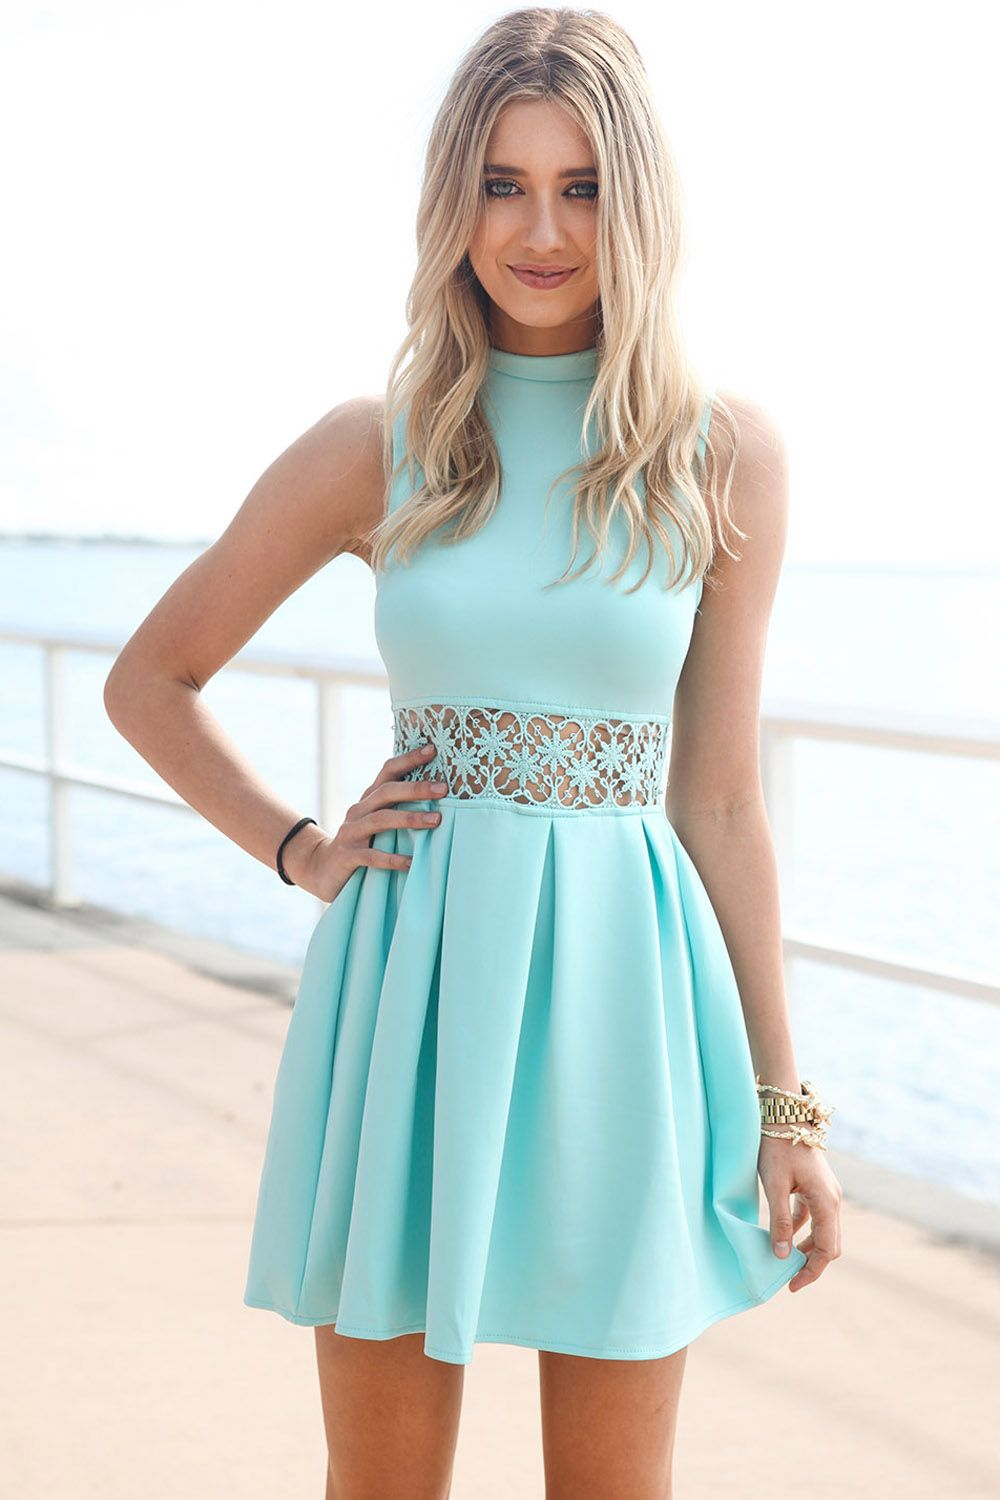 I LOVE this | Fashion | Pinterest | Clothes, Homecoming and Prom